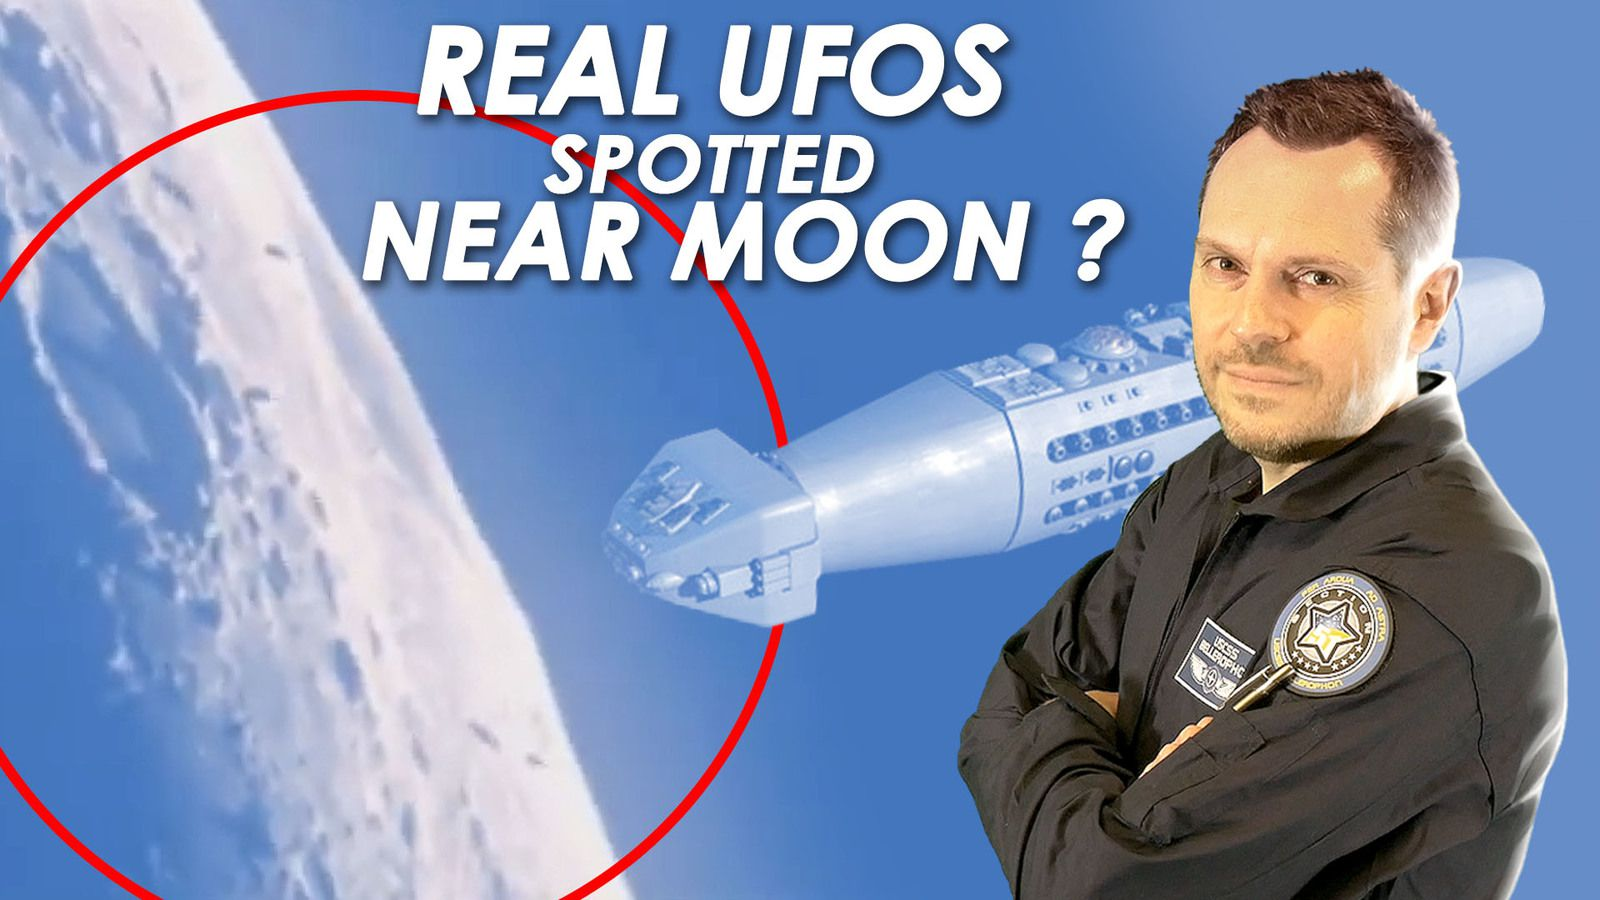 👽 Cylinder Shaped UFOs Spotted Near Moon (from Montreal, France March 2020) - Real UFOs ?